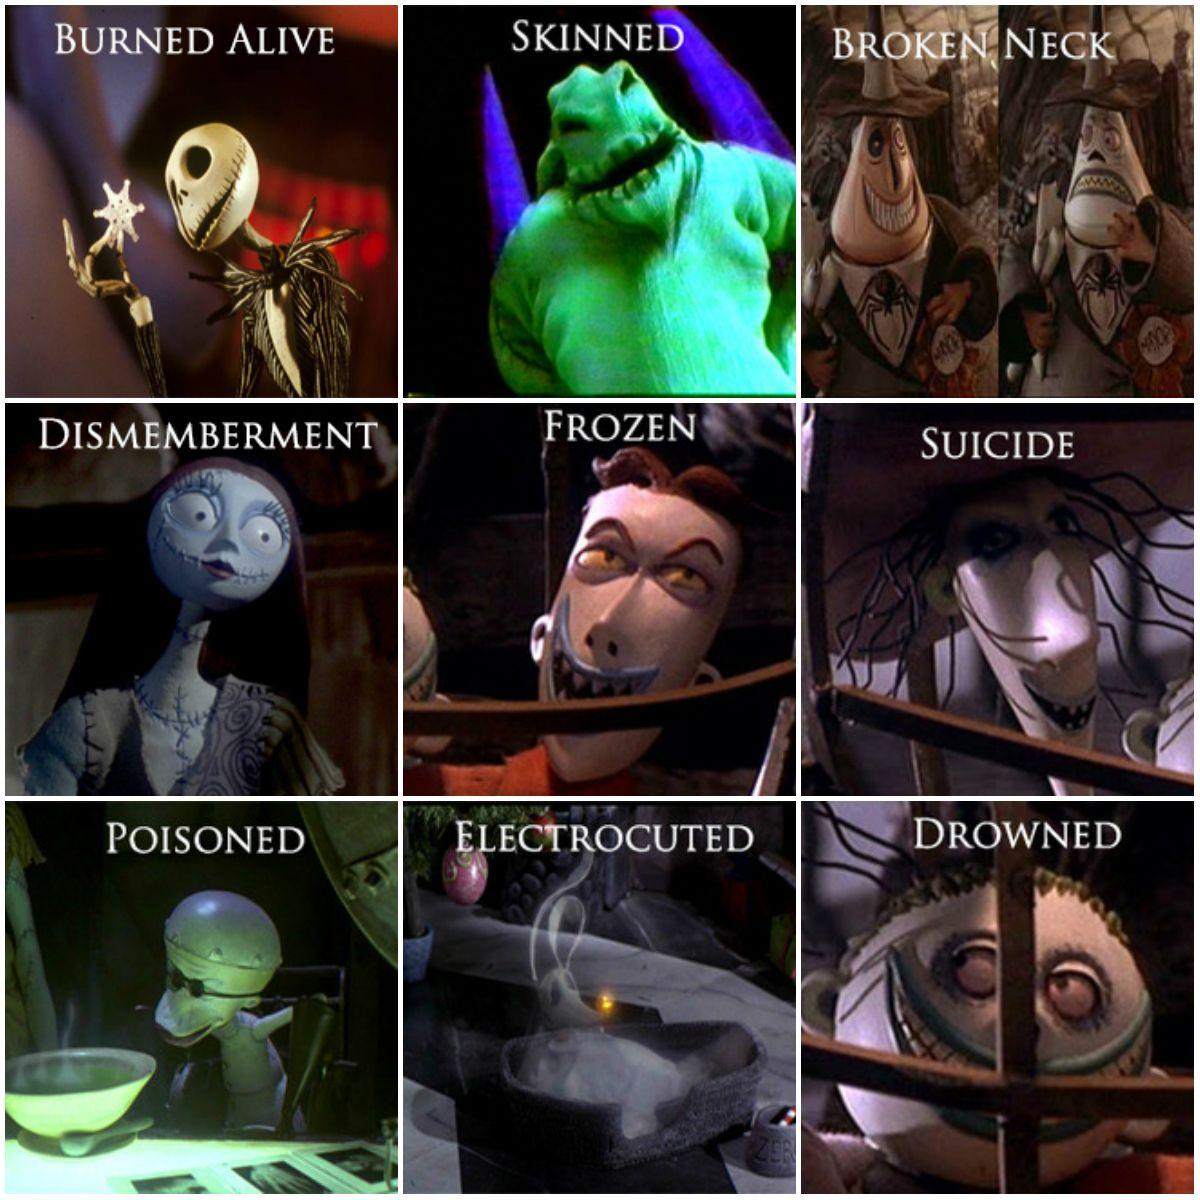 """halloweenpictures: """"The Nightmare Before Christmas: How They Died ..."""